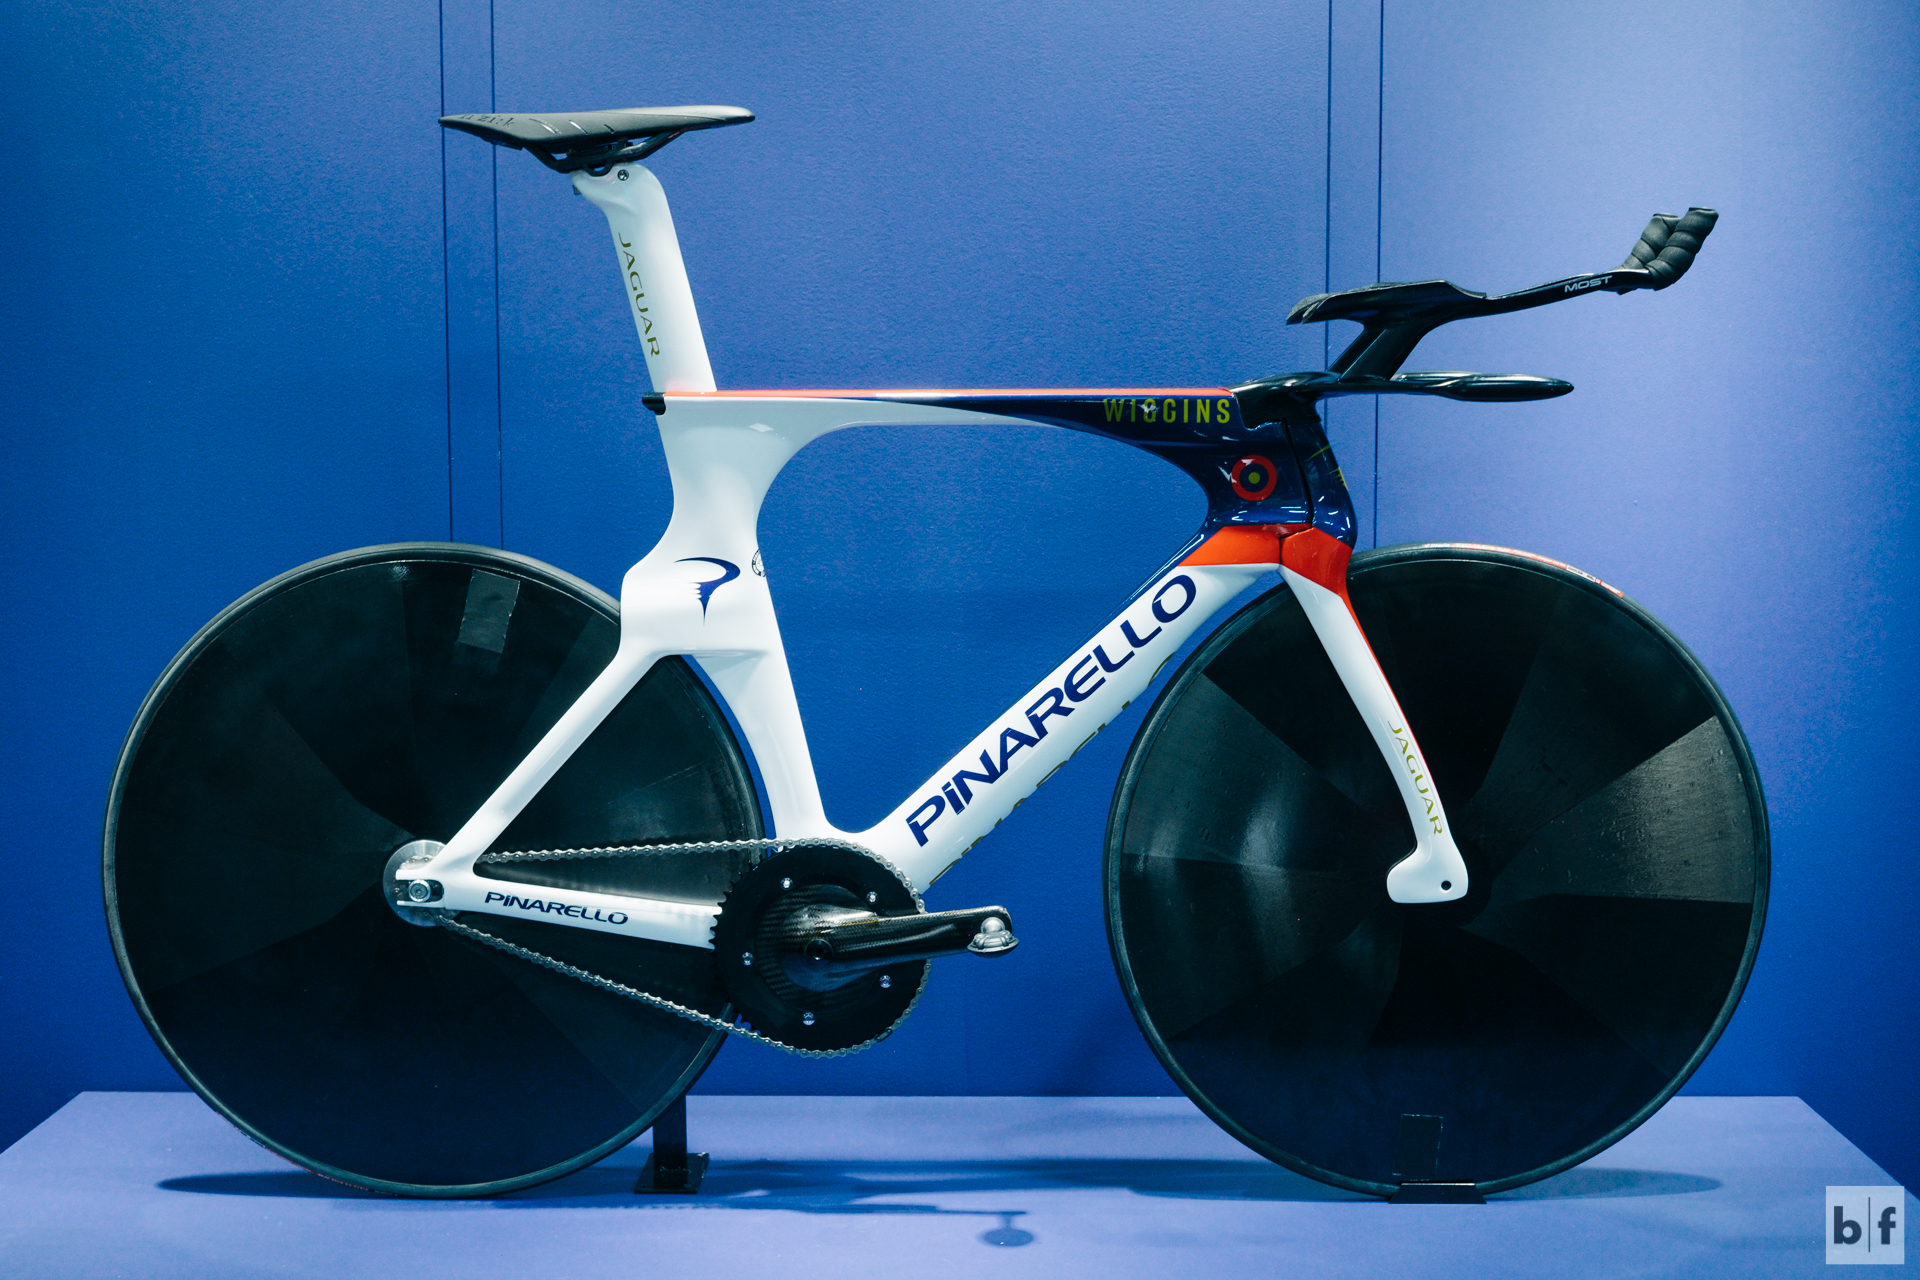 Wiggo's record smashing hour record bike. no picture does this bike justice. you HAVE to see it in person to appreciate all the details (of which there are MANY) the team put into designing this bike.